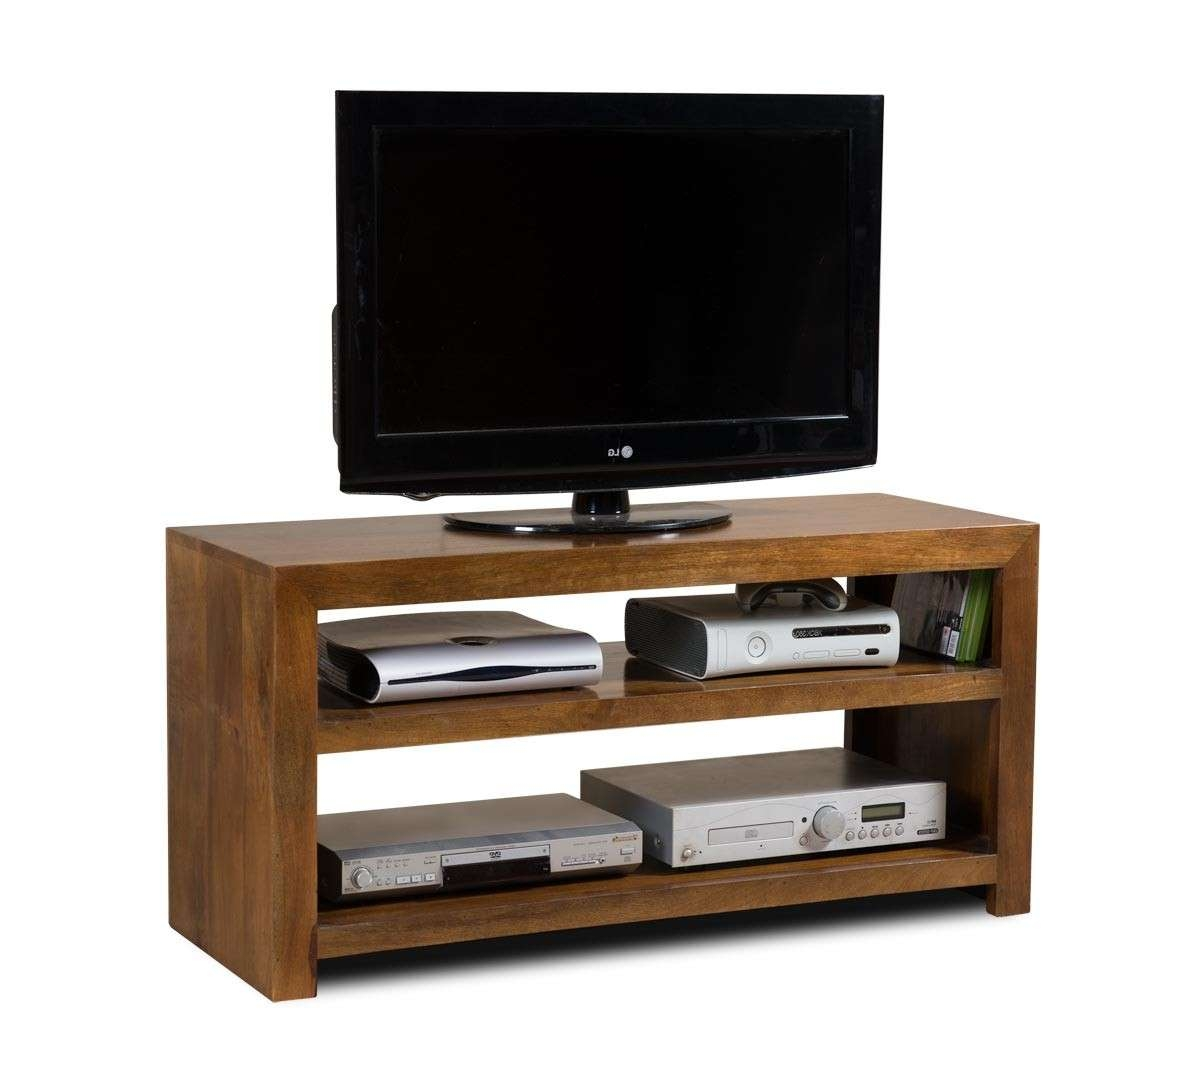 Solid Mango Wood Tv Cabinet With Drawers | Casa Bella Indian Furniture Pertaining To Mango Wood Tv Cabinets (View 18 of 20)